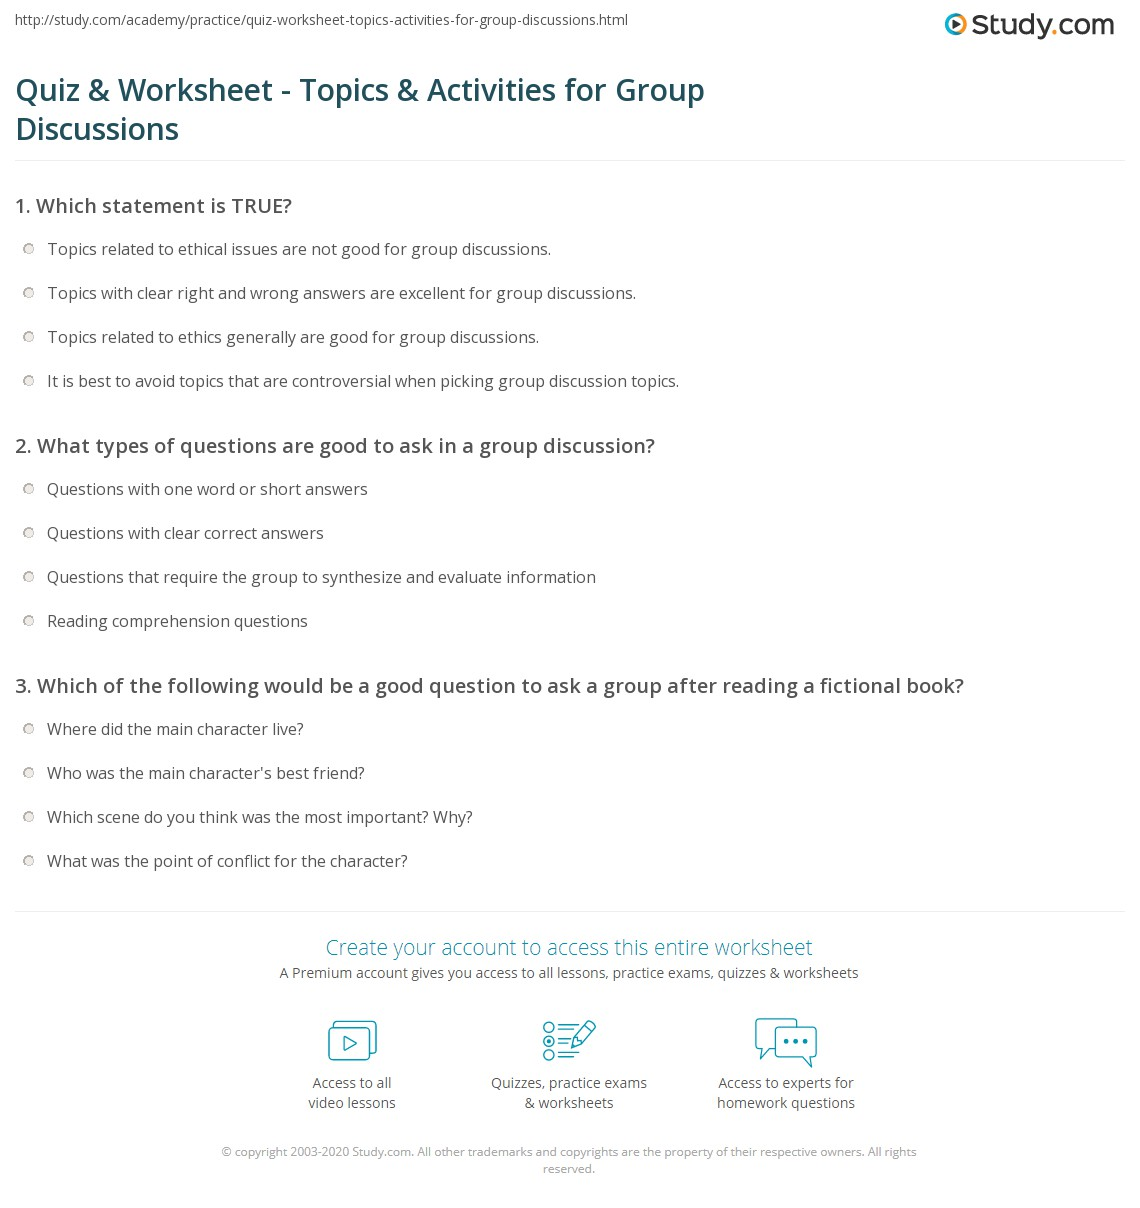 Group Discussion Topics & Activities